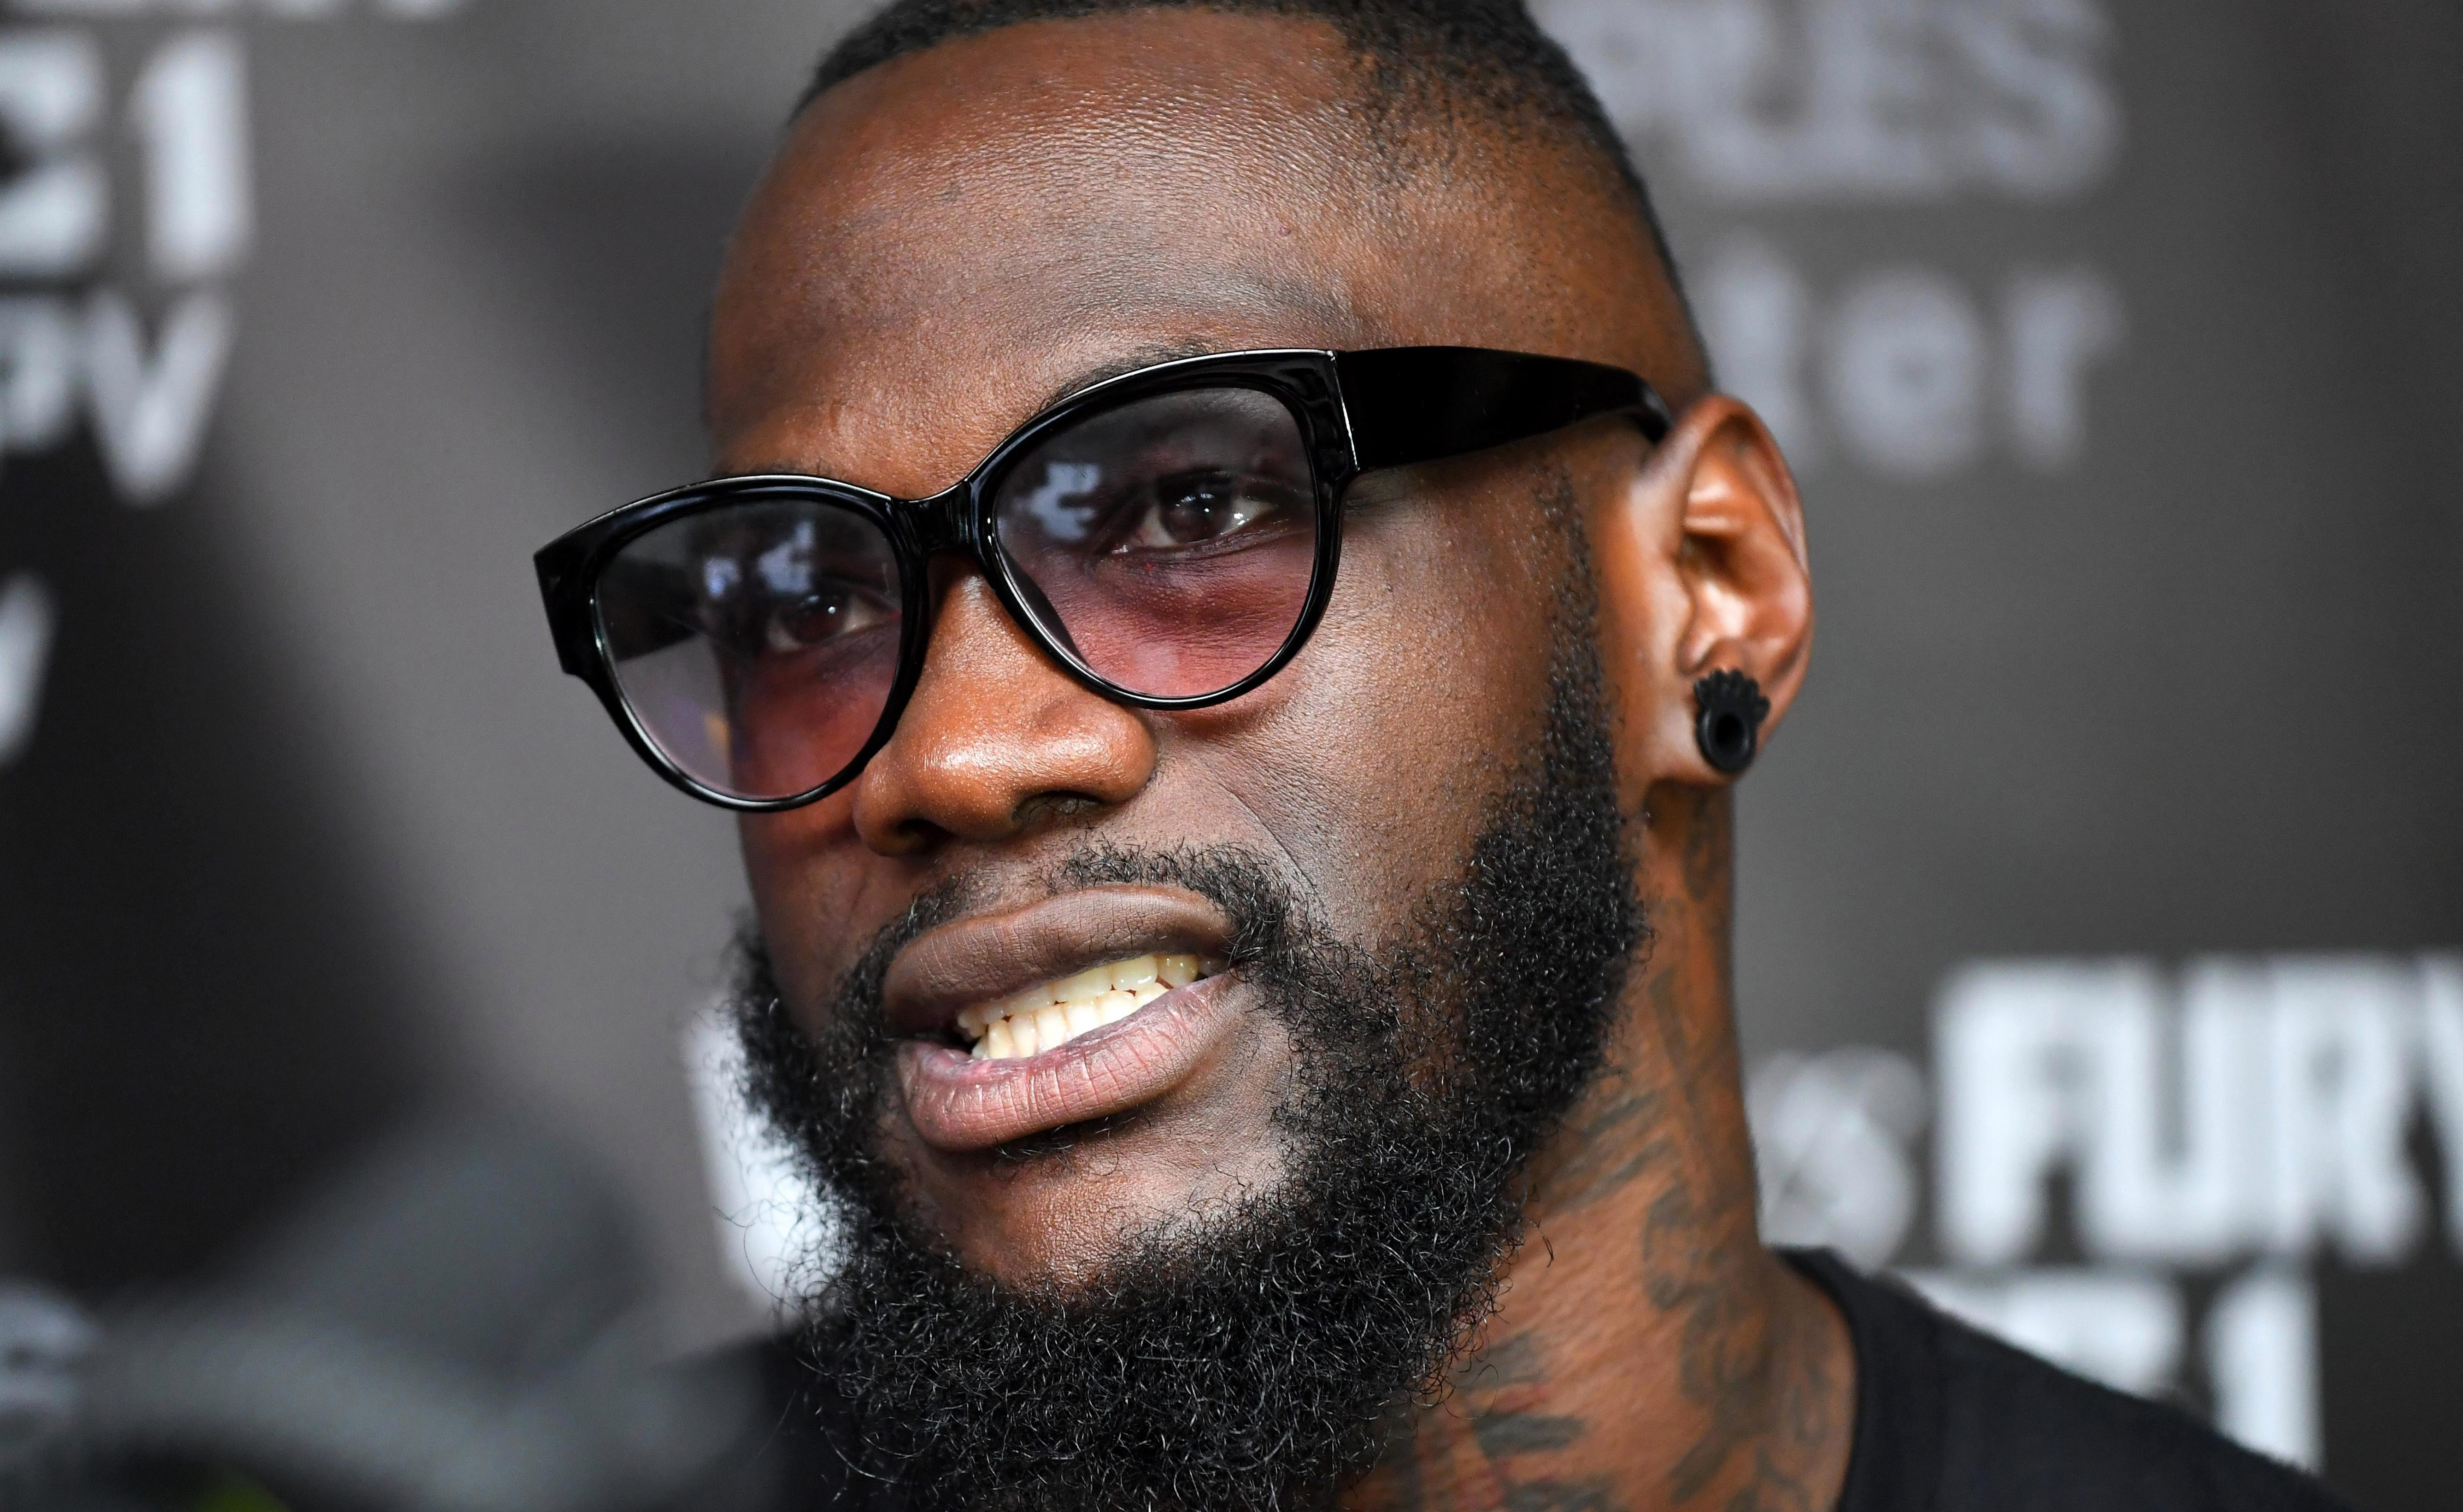 Deontay Wilder has once again taken a swipe at heavyweight rival Anthony Joshua